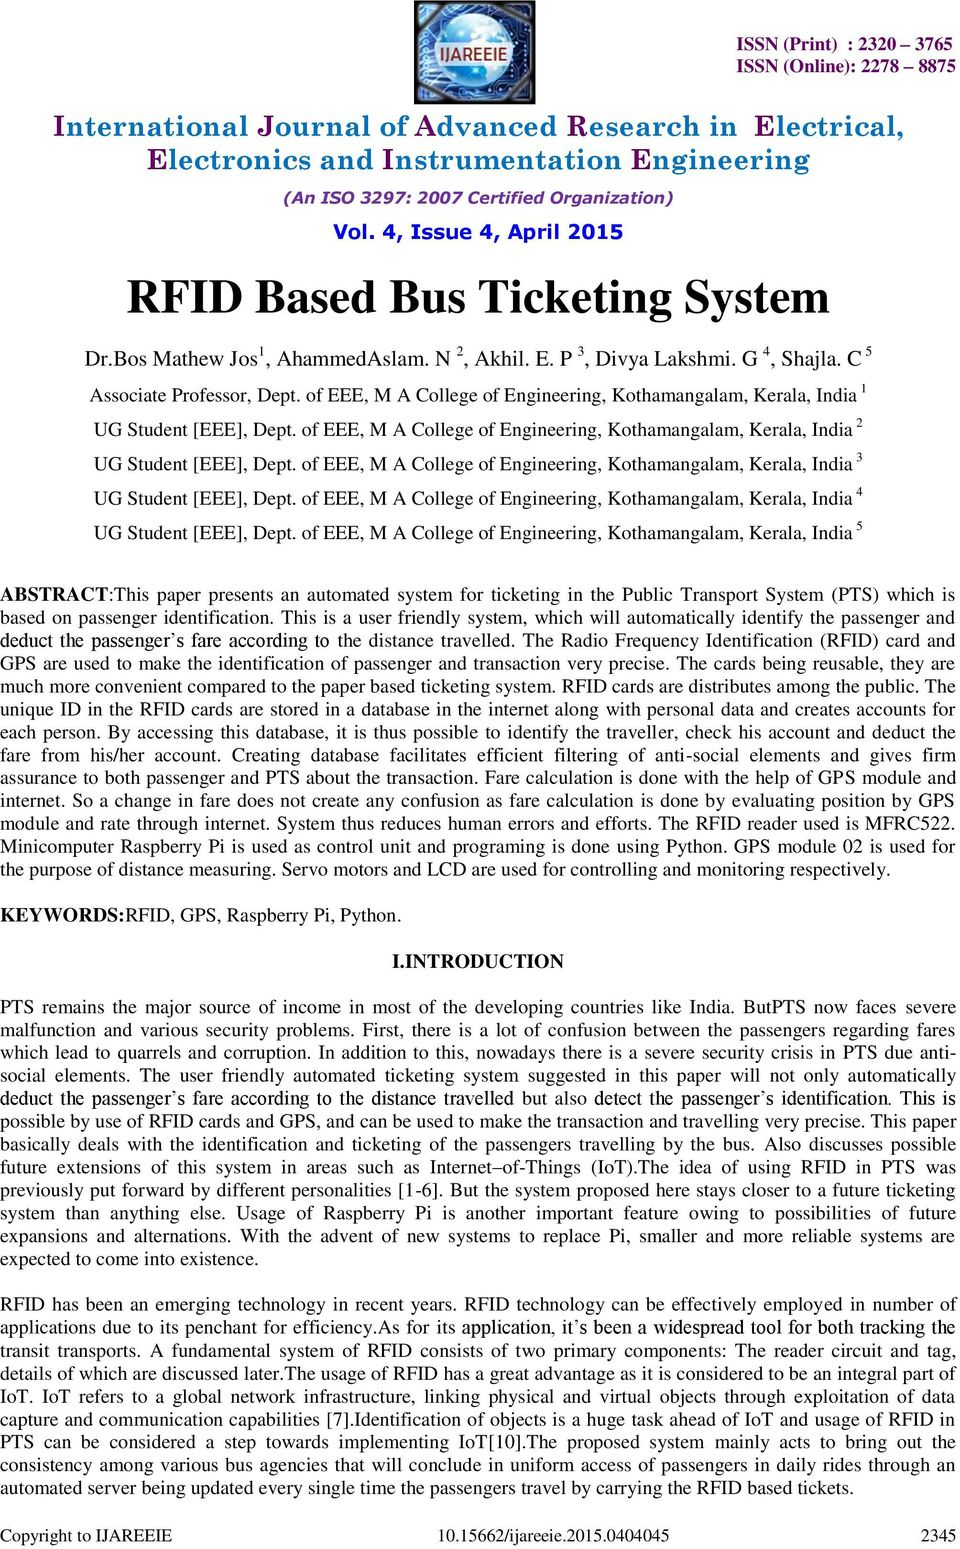 Rfid Based Bus Ticketing System Pdf Is Basic Block Diagram Of Highway Toll Collection Eee M A College Engineering Kothamangalam Kerala India 3 Ug Student